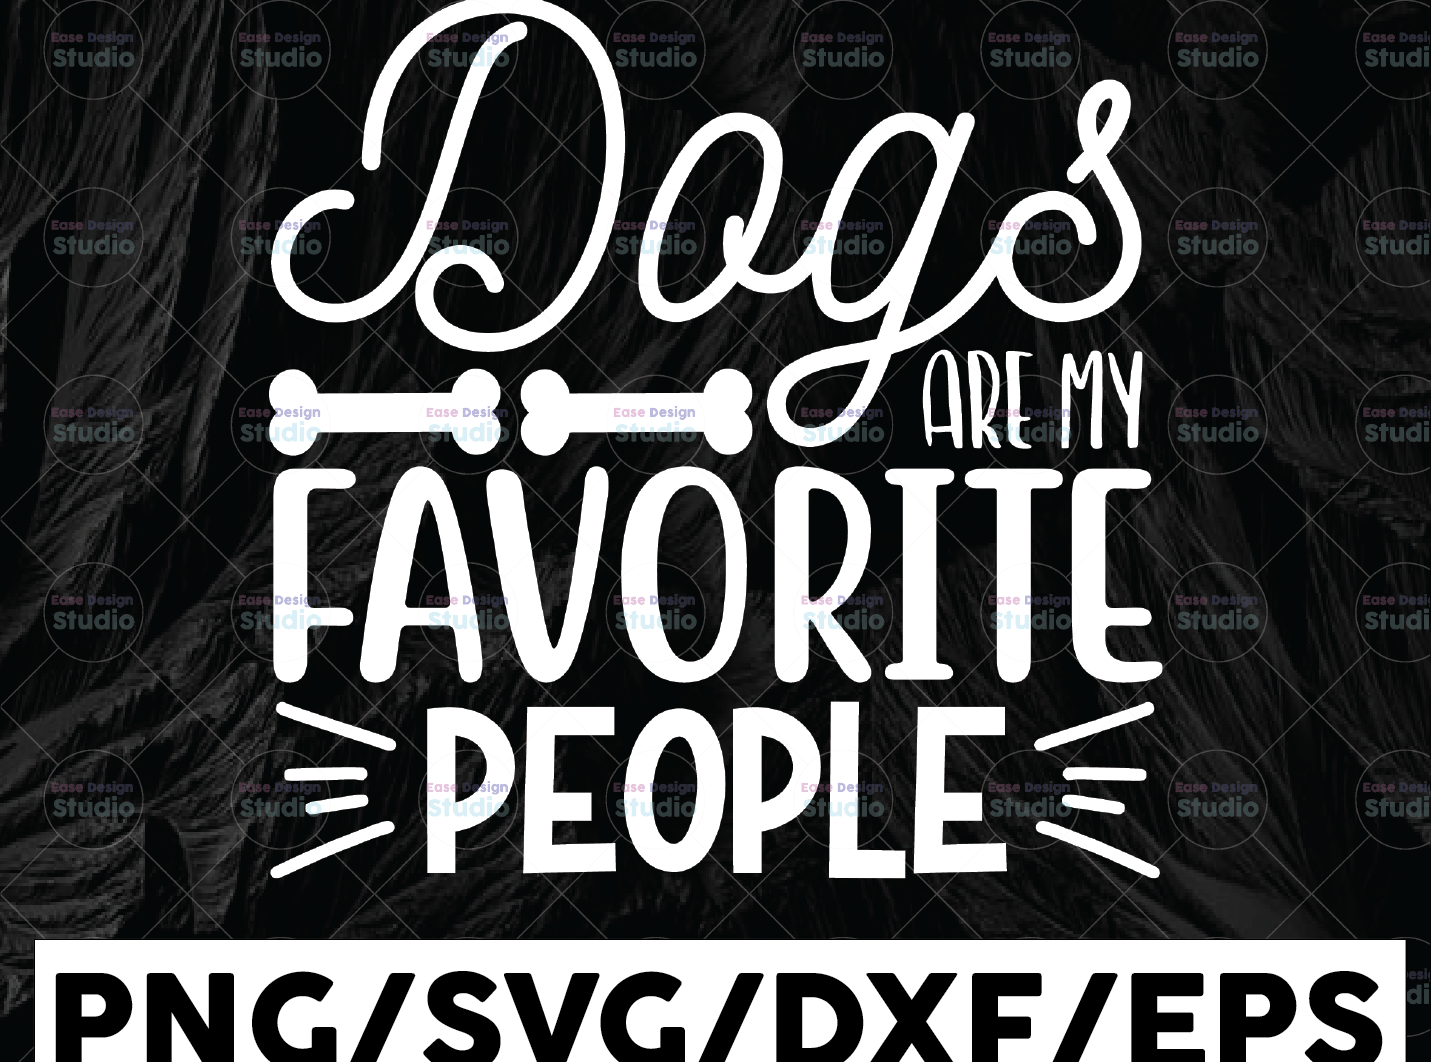 Dogs Are My Favorite People svg - Funny Cut File - Dog Lovers svg - WTMETSY13012021 01 156 -